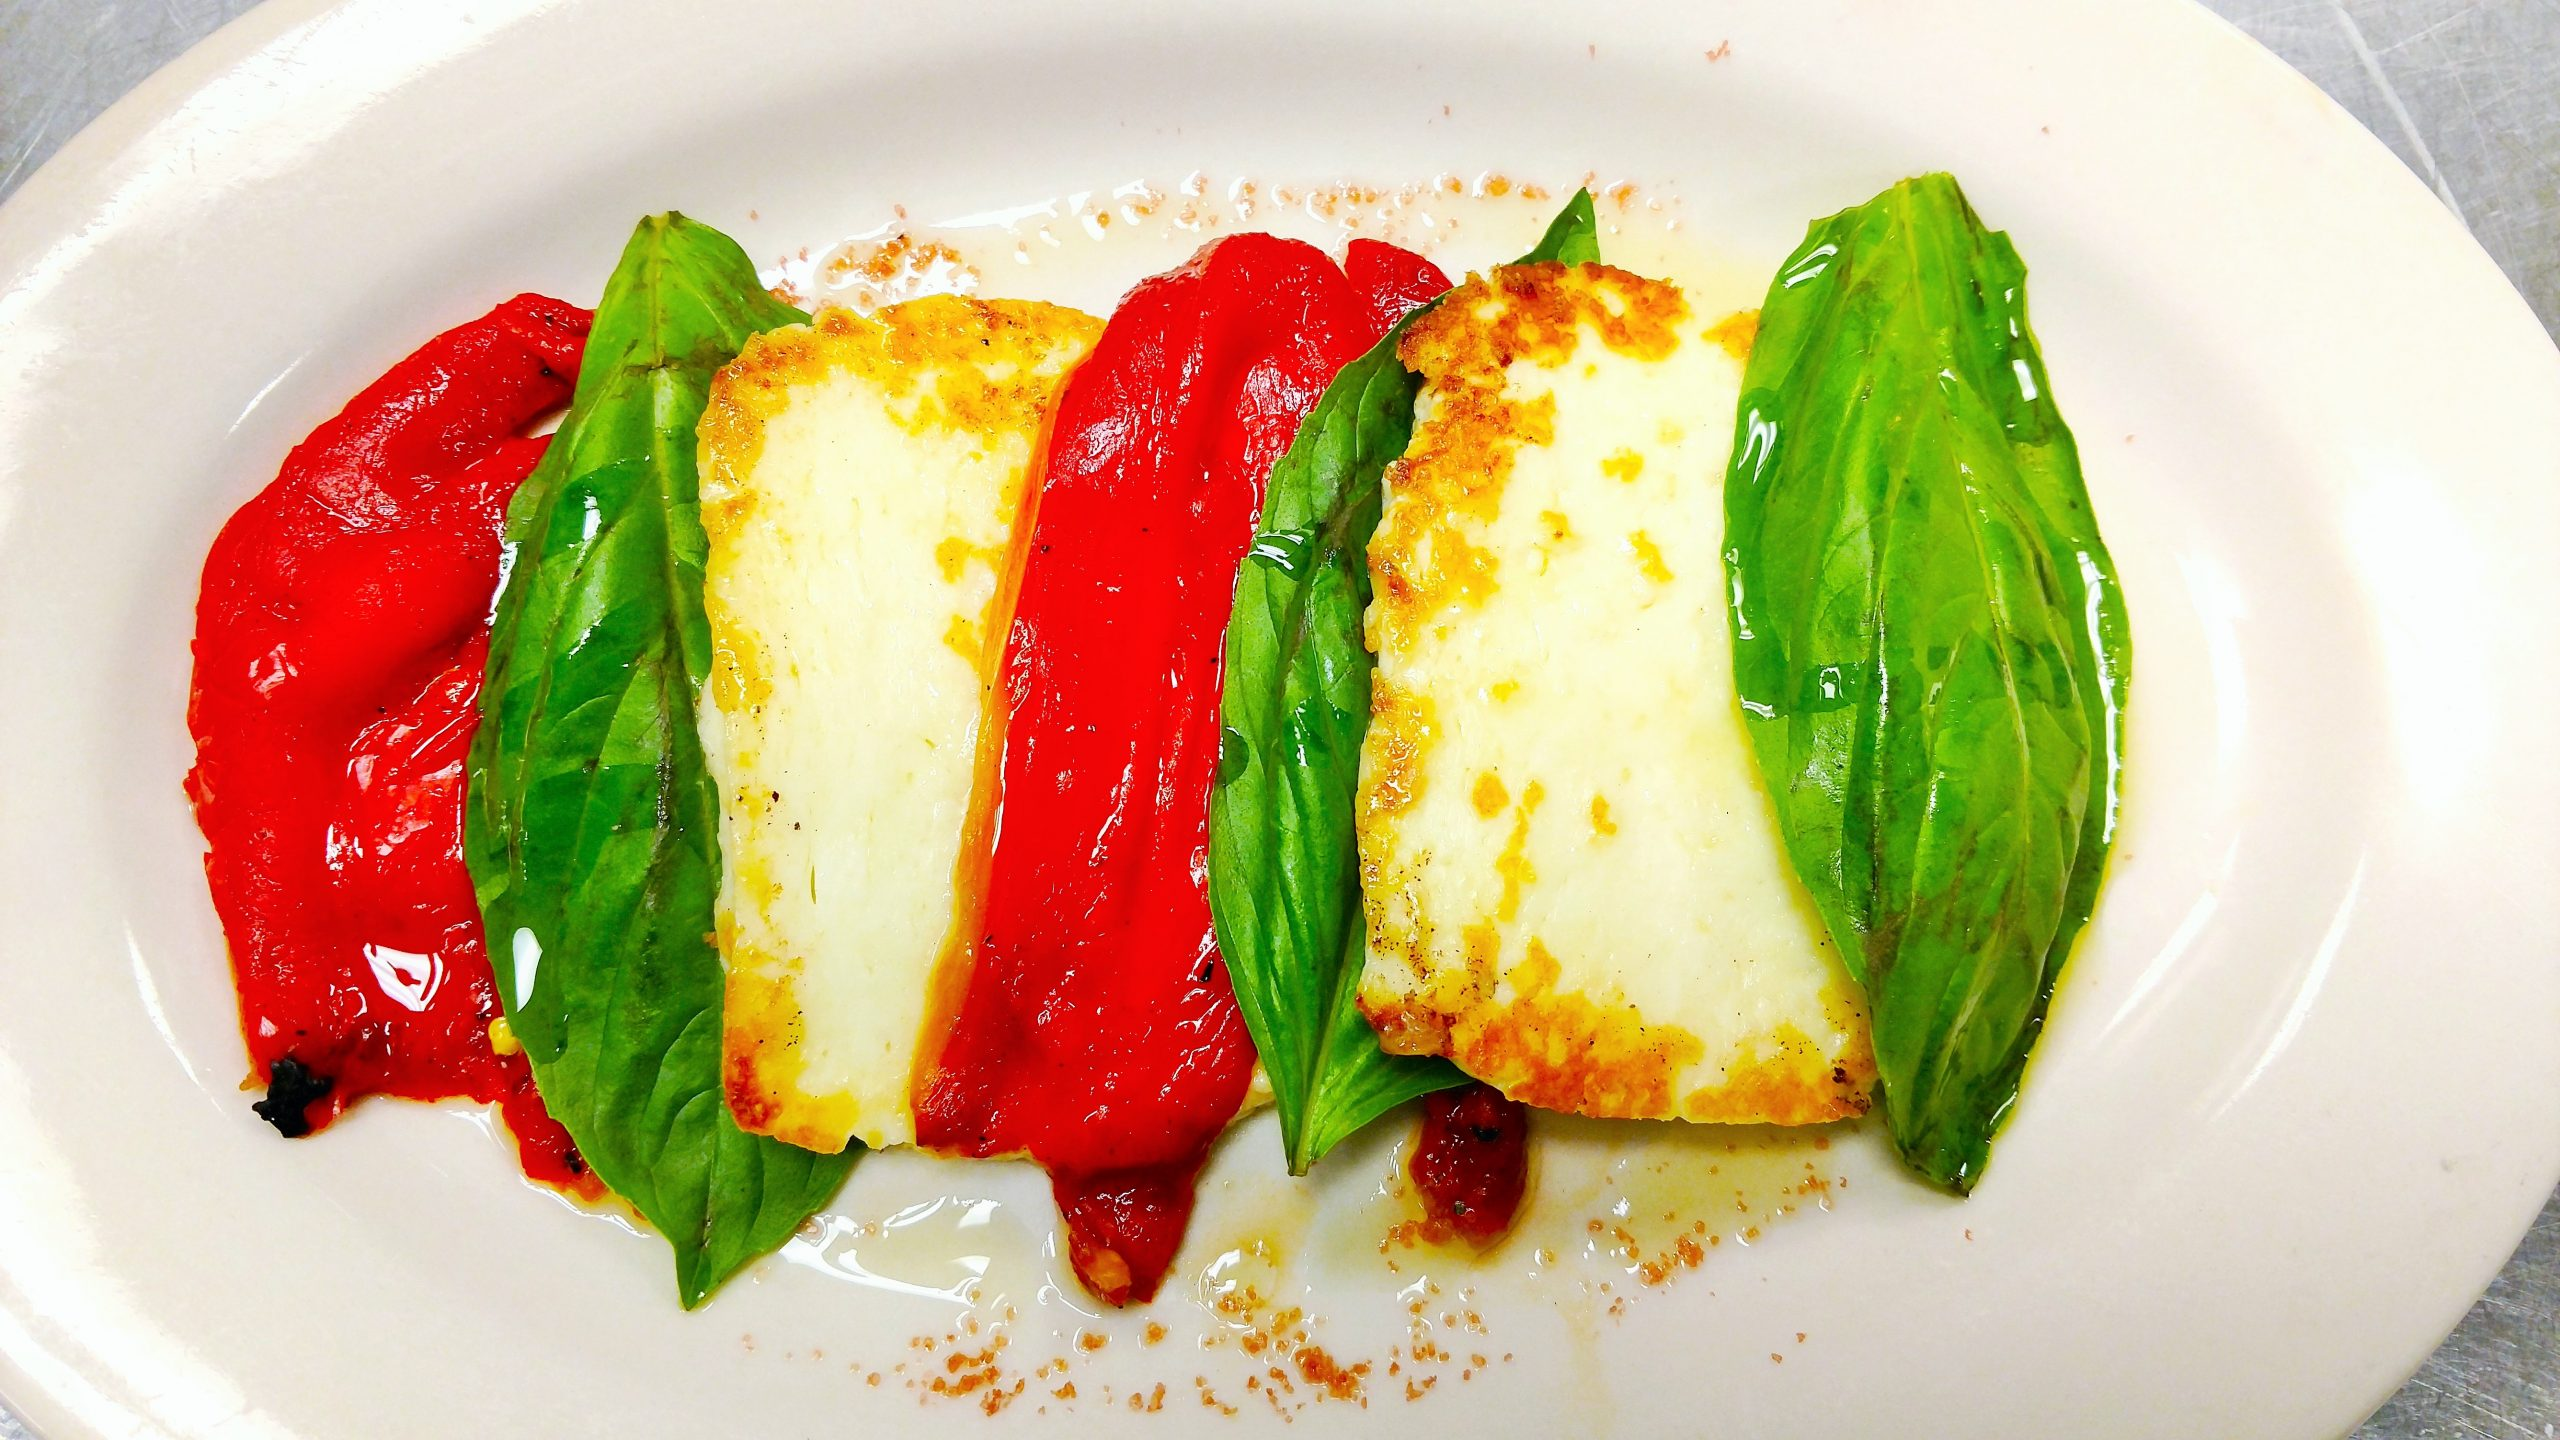 Jake and Telly's Specials - Haloumi & Peppers